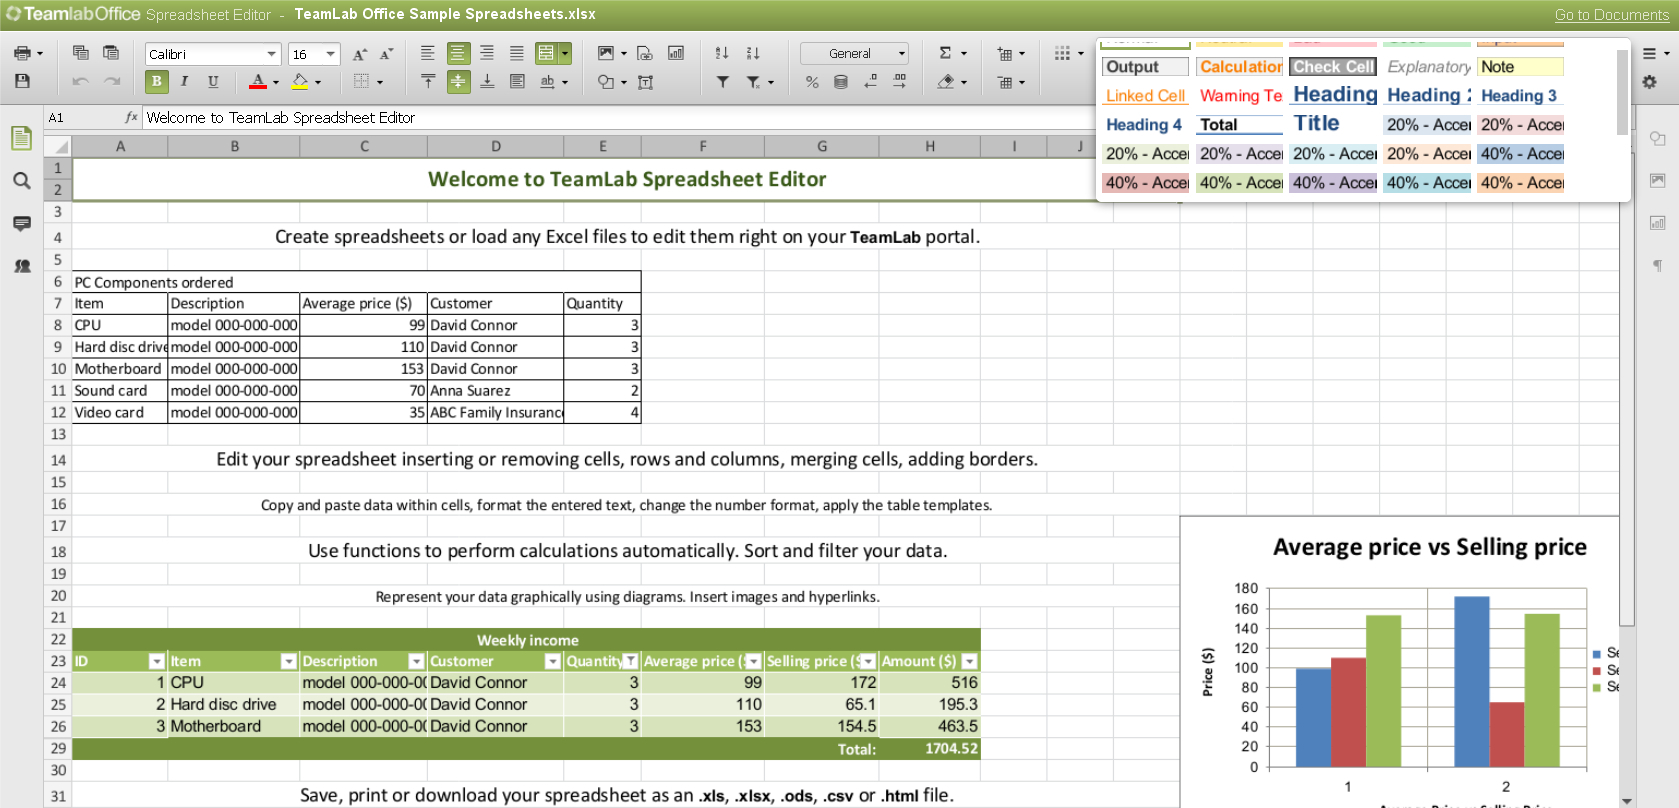 Online Spreadsheet Editor In Online Spreadsheet Editor For How To Make A Spreadsheet Excel